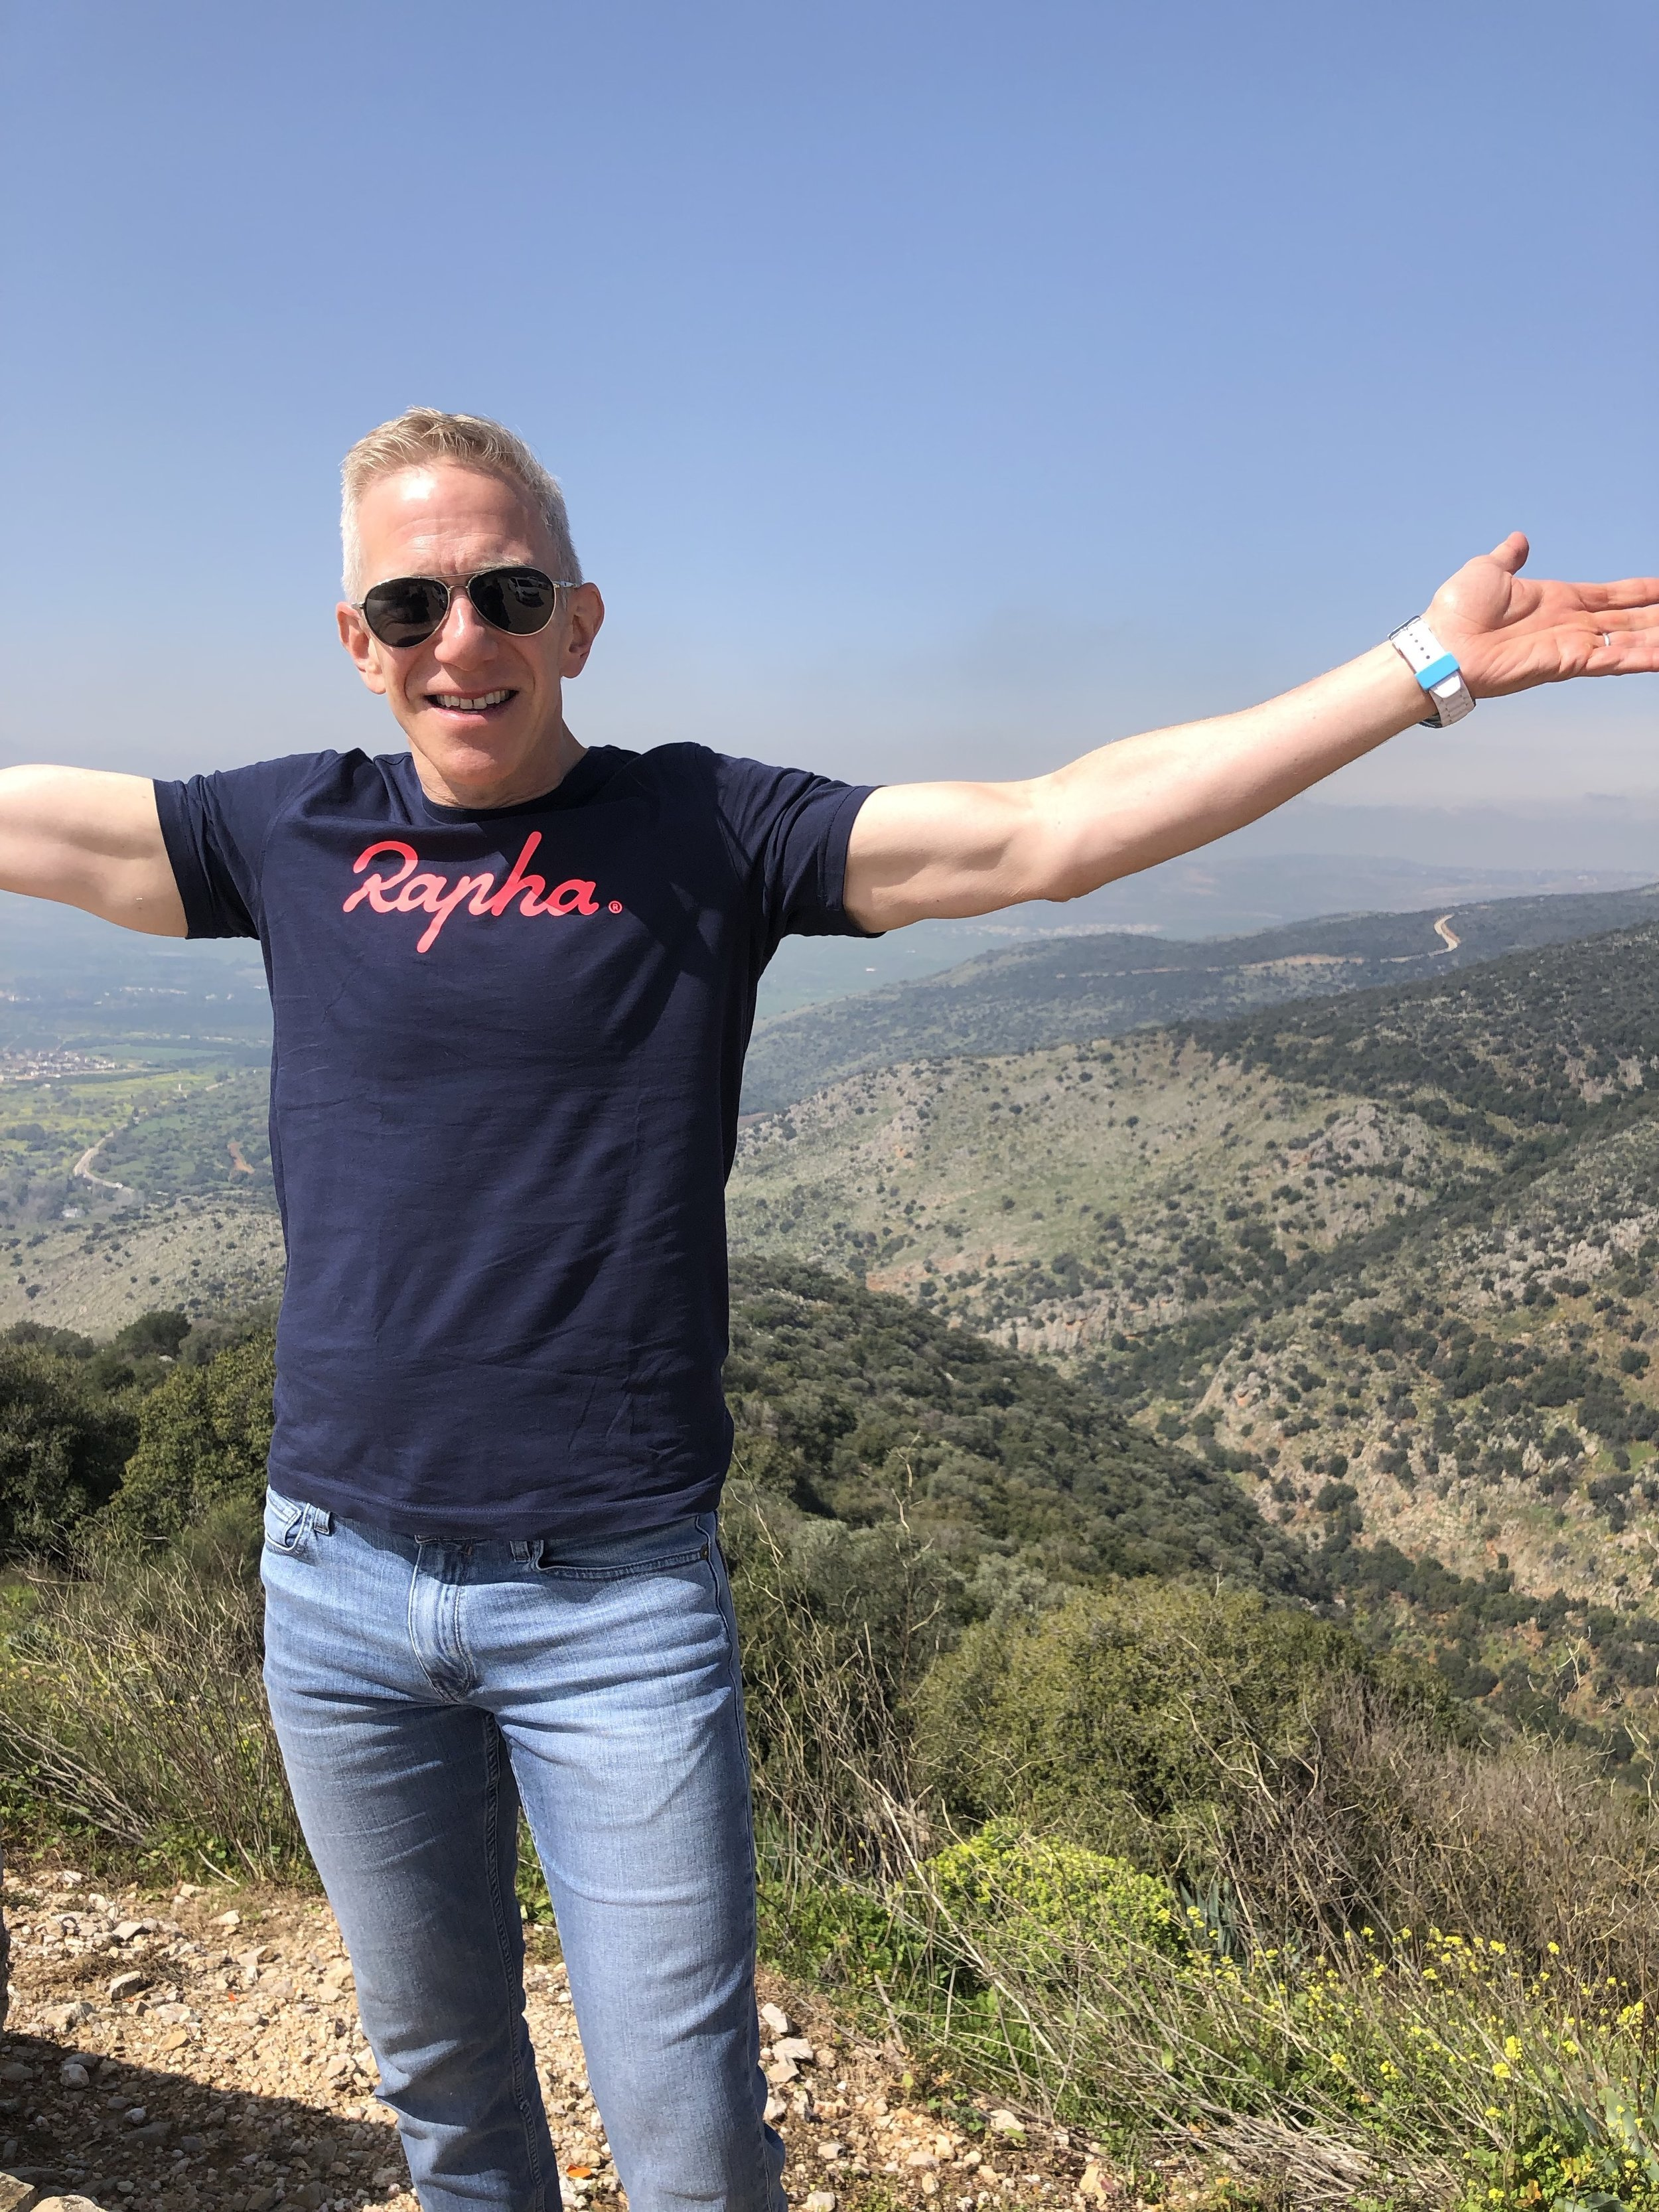 Nimrod (the Fortress, not Michael), Golan Heights, Israel